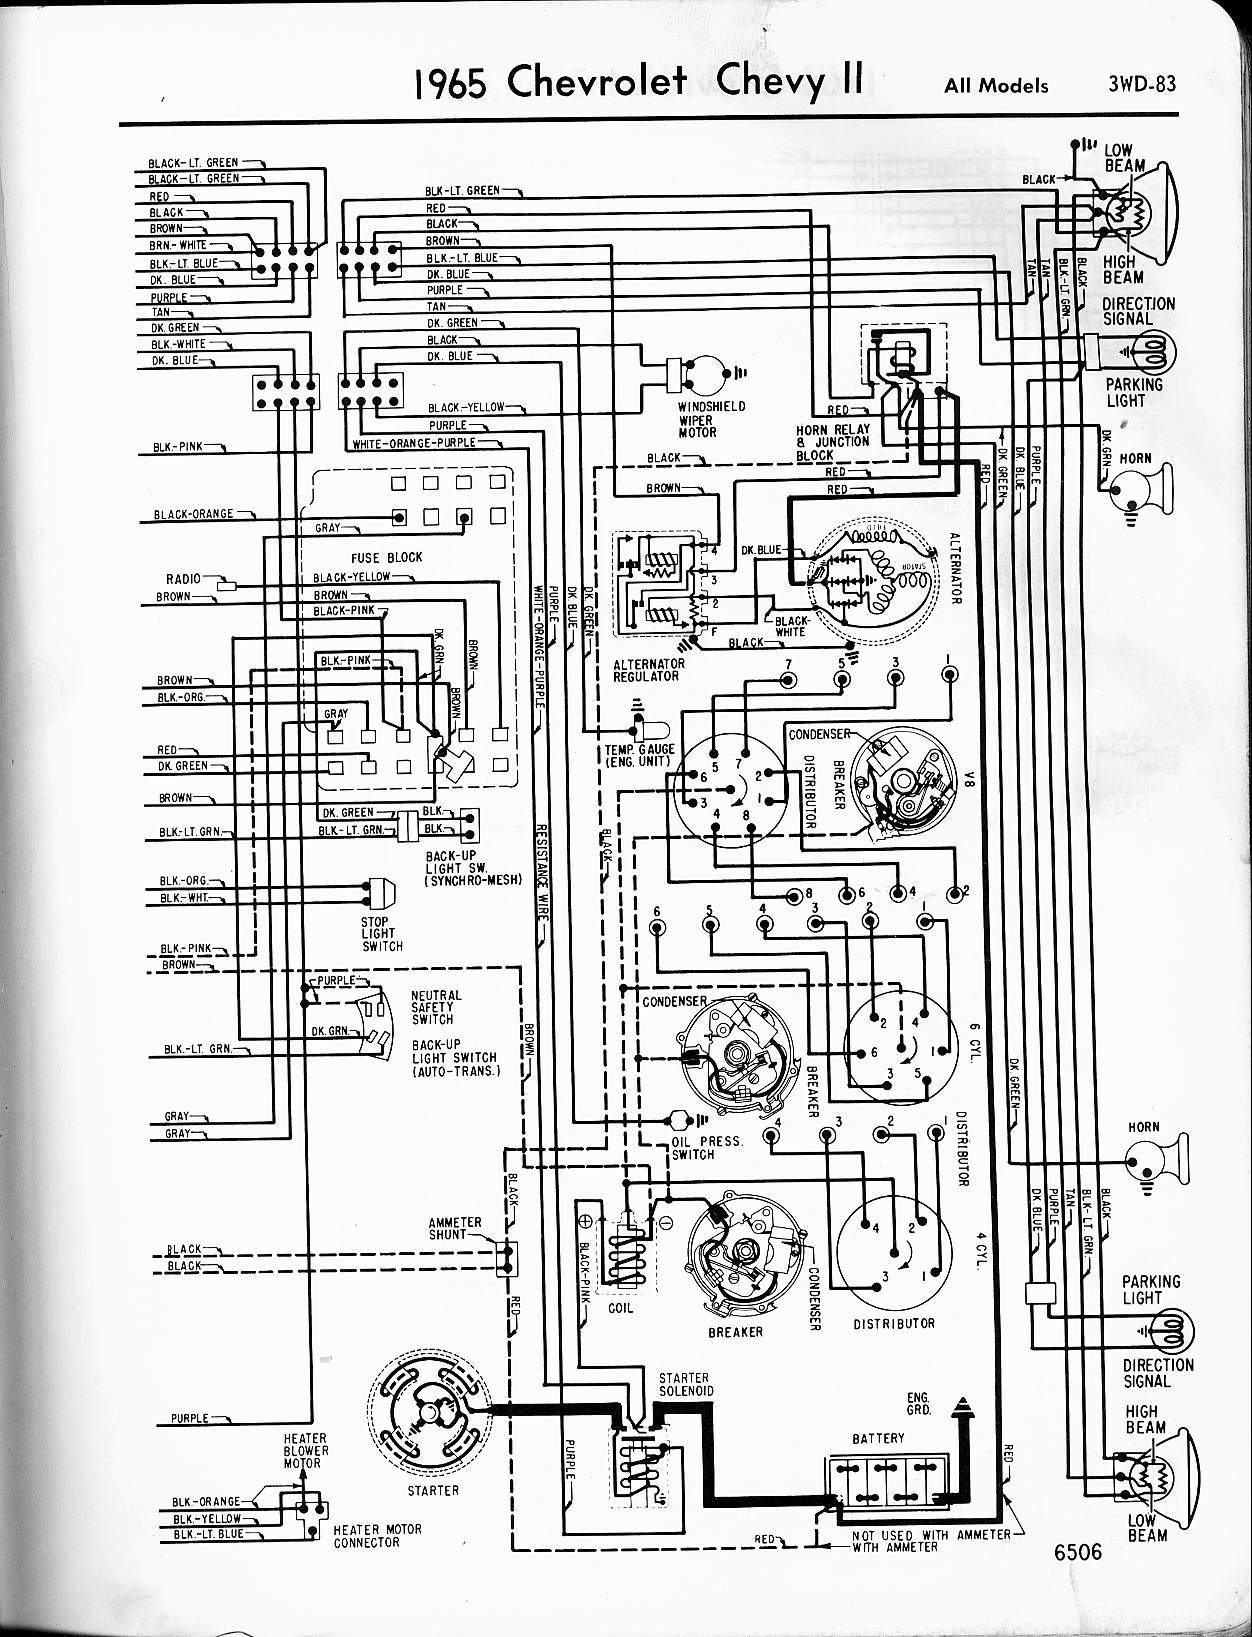 hight resolution of 1965 chevy ii wiring diagram figure a figure b